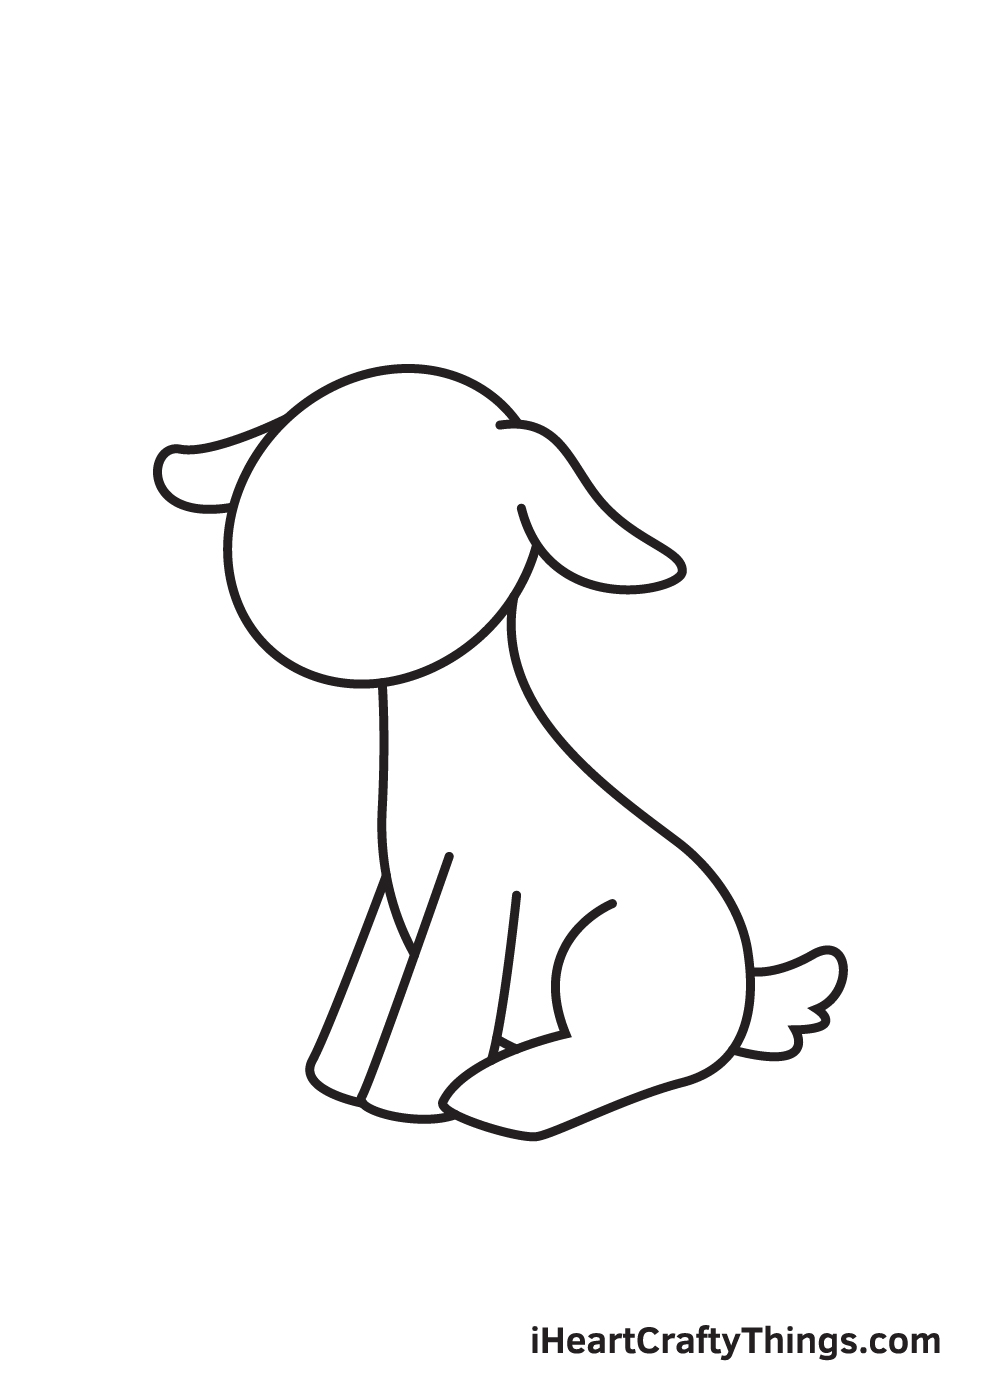 goat drawing - step 6